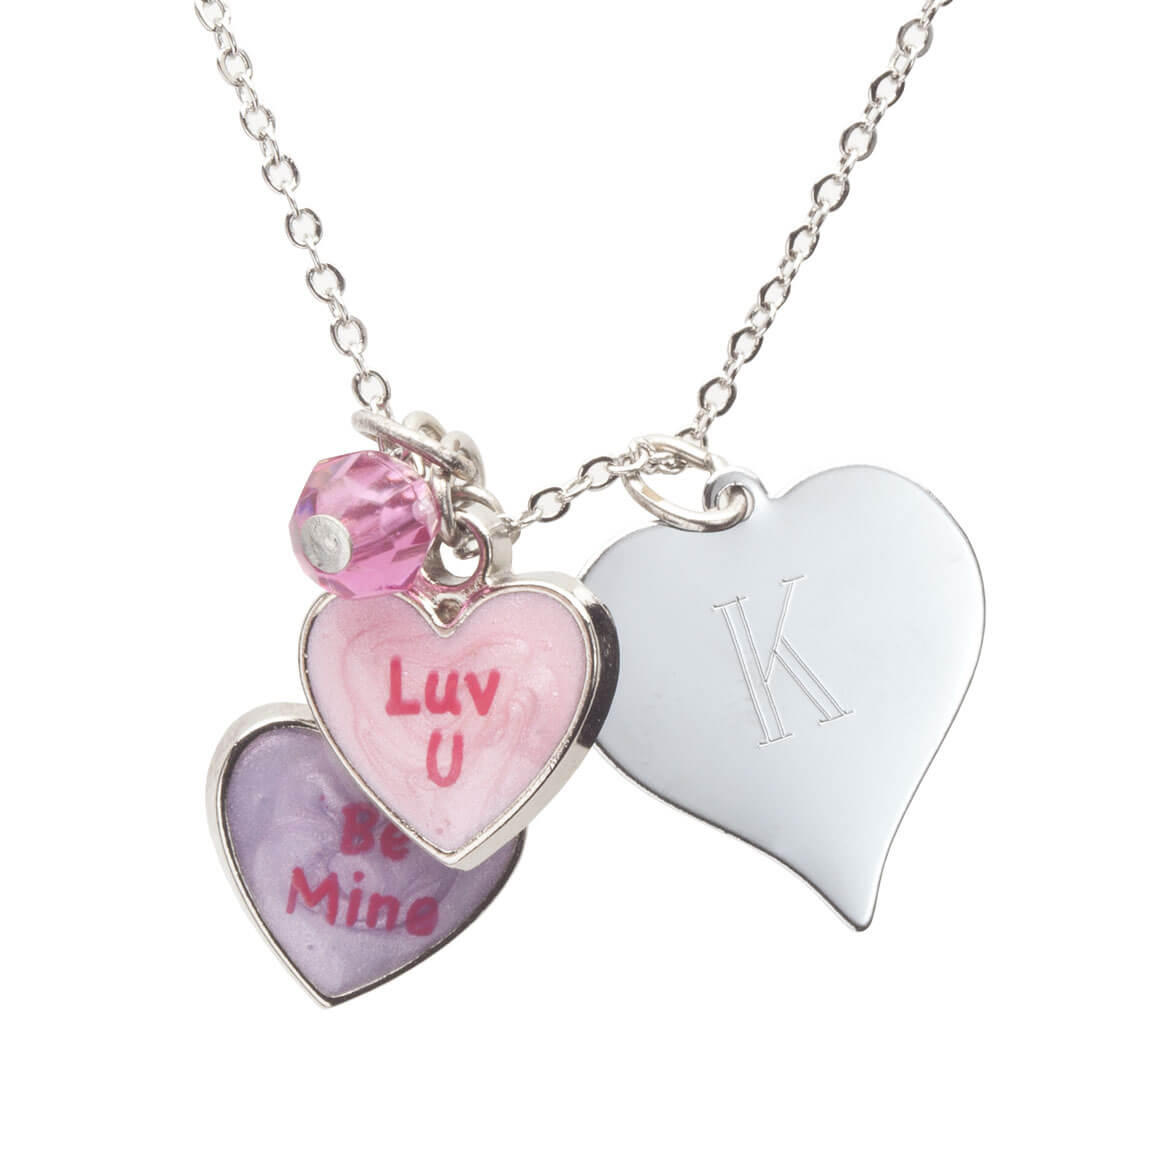 Personalized Valentine's Day Luv U Necklace